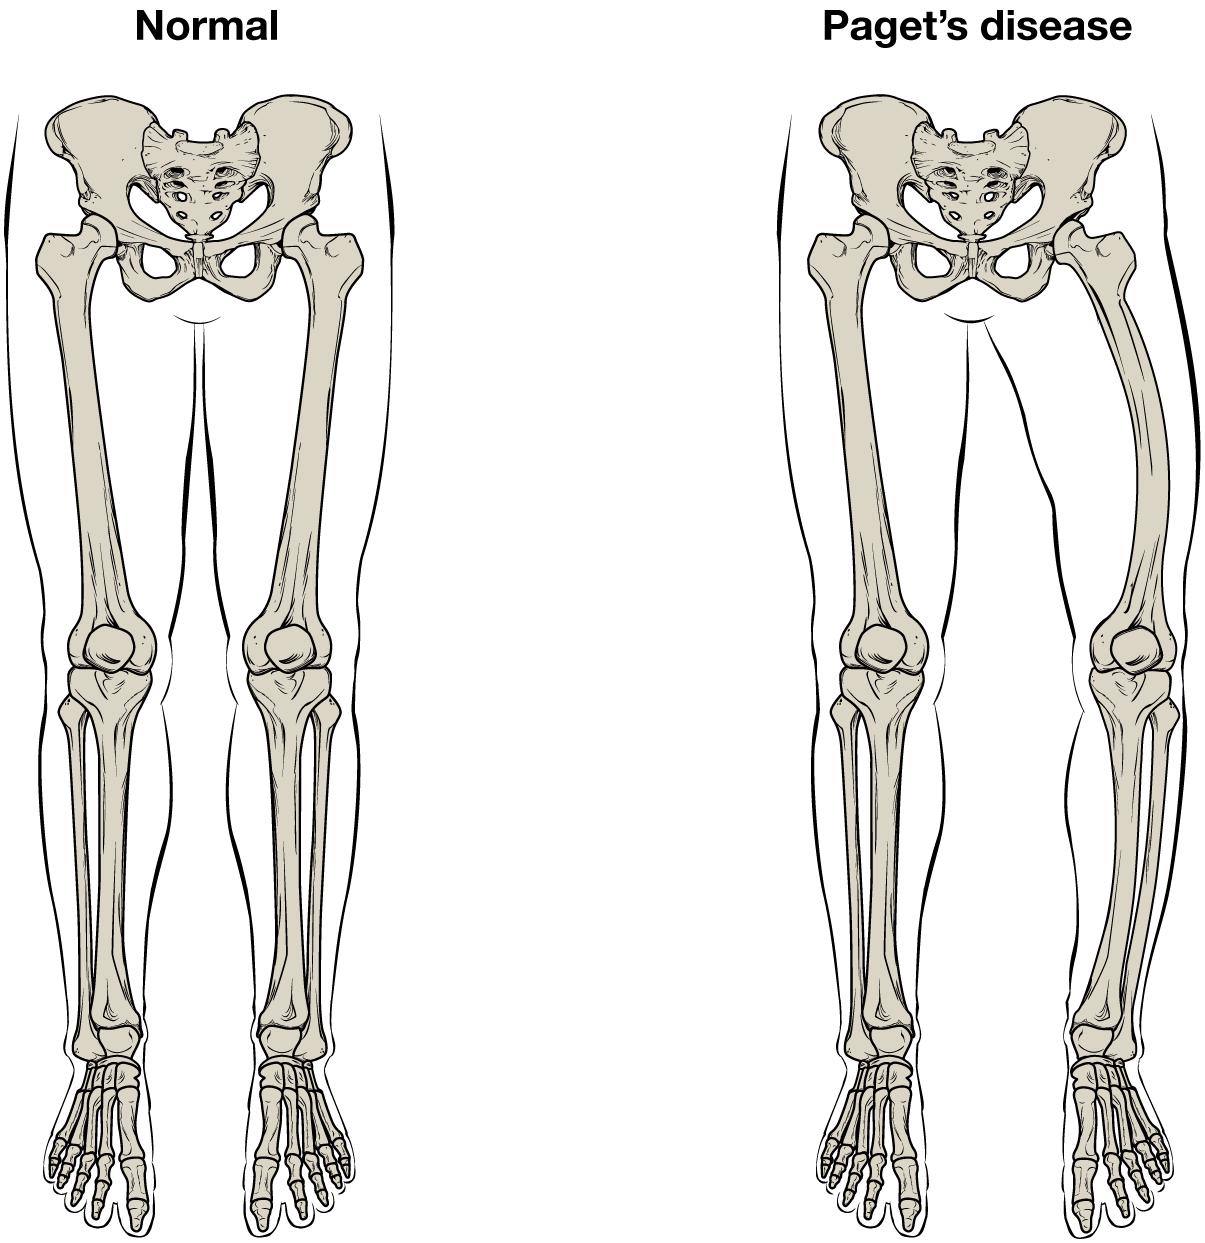 Transparent bones leg. Normal are relatively straight